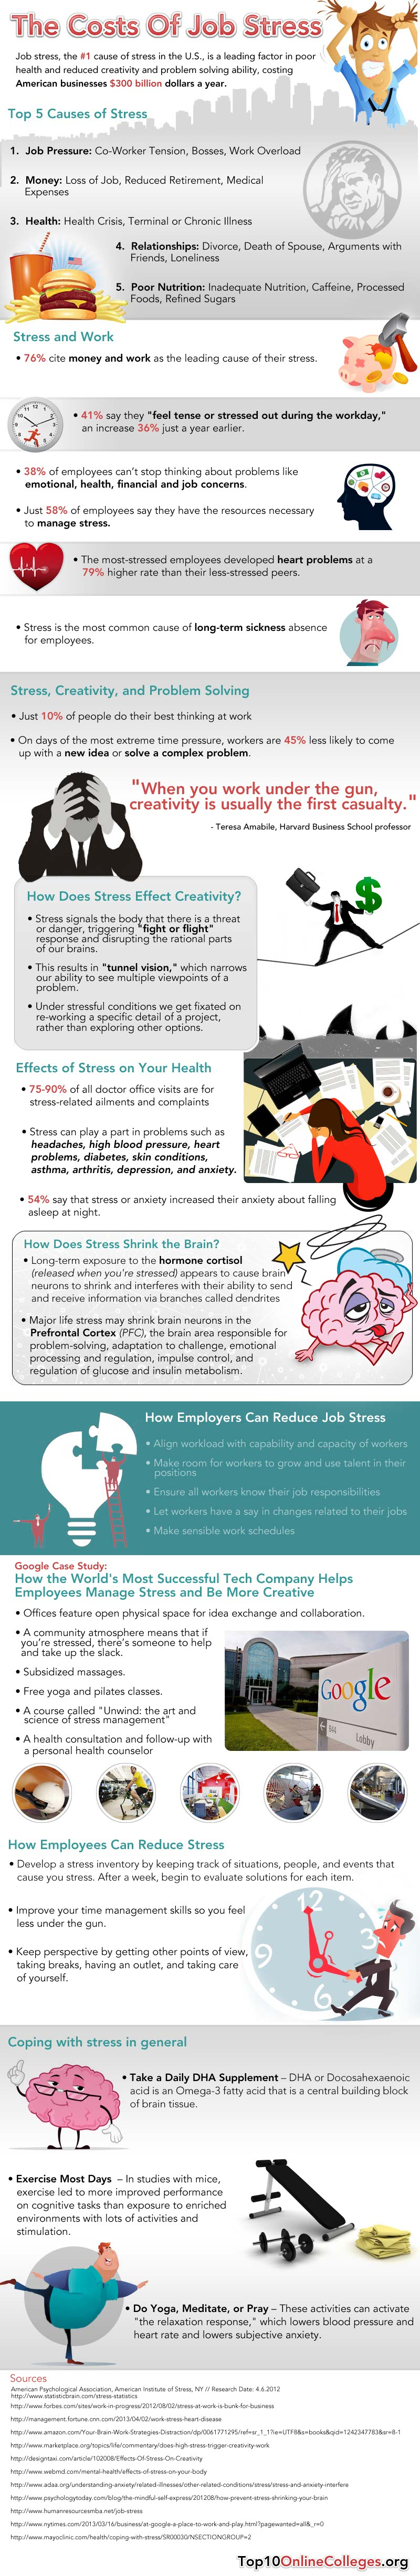 Job Stress Costs-Infographic